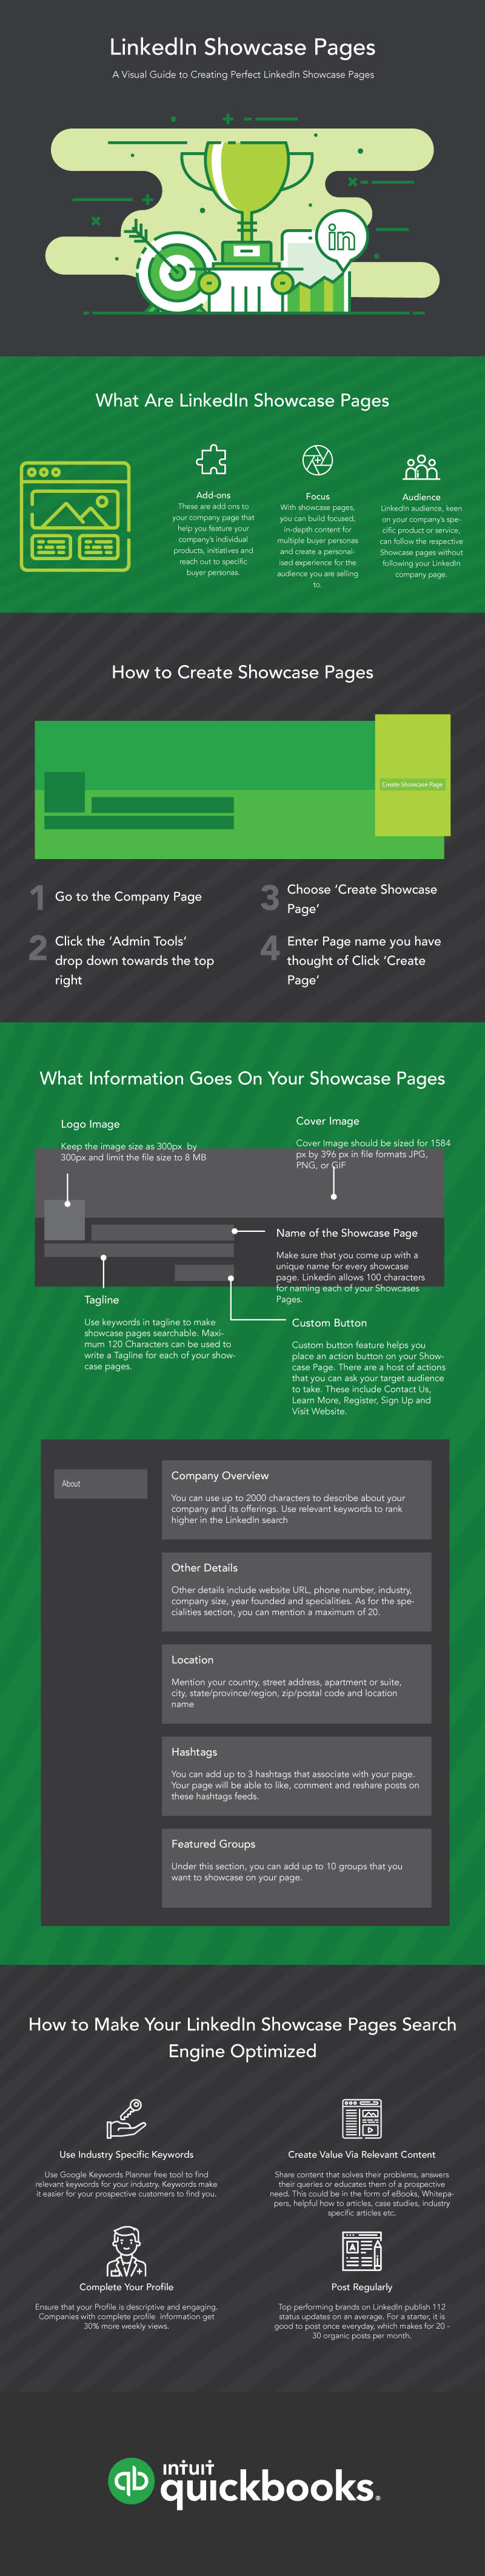 Infographic depicting details about how to create LinkedIn Showcase Pages.